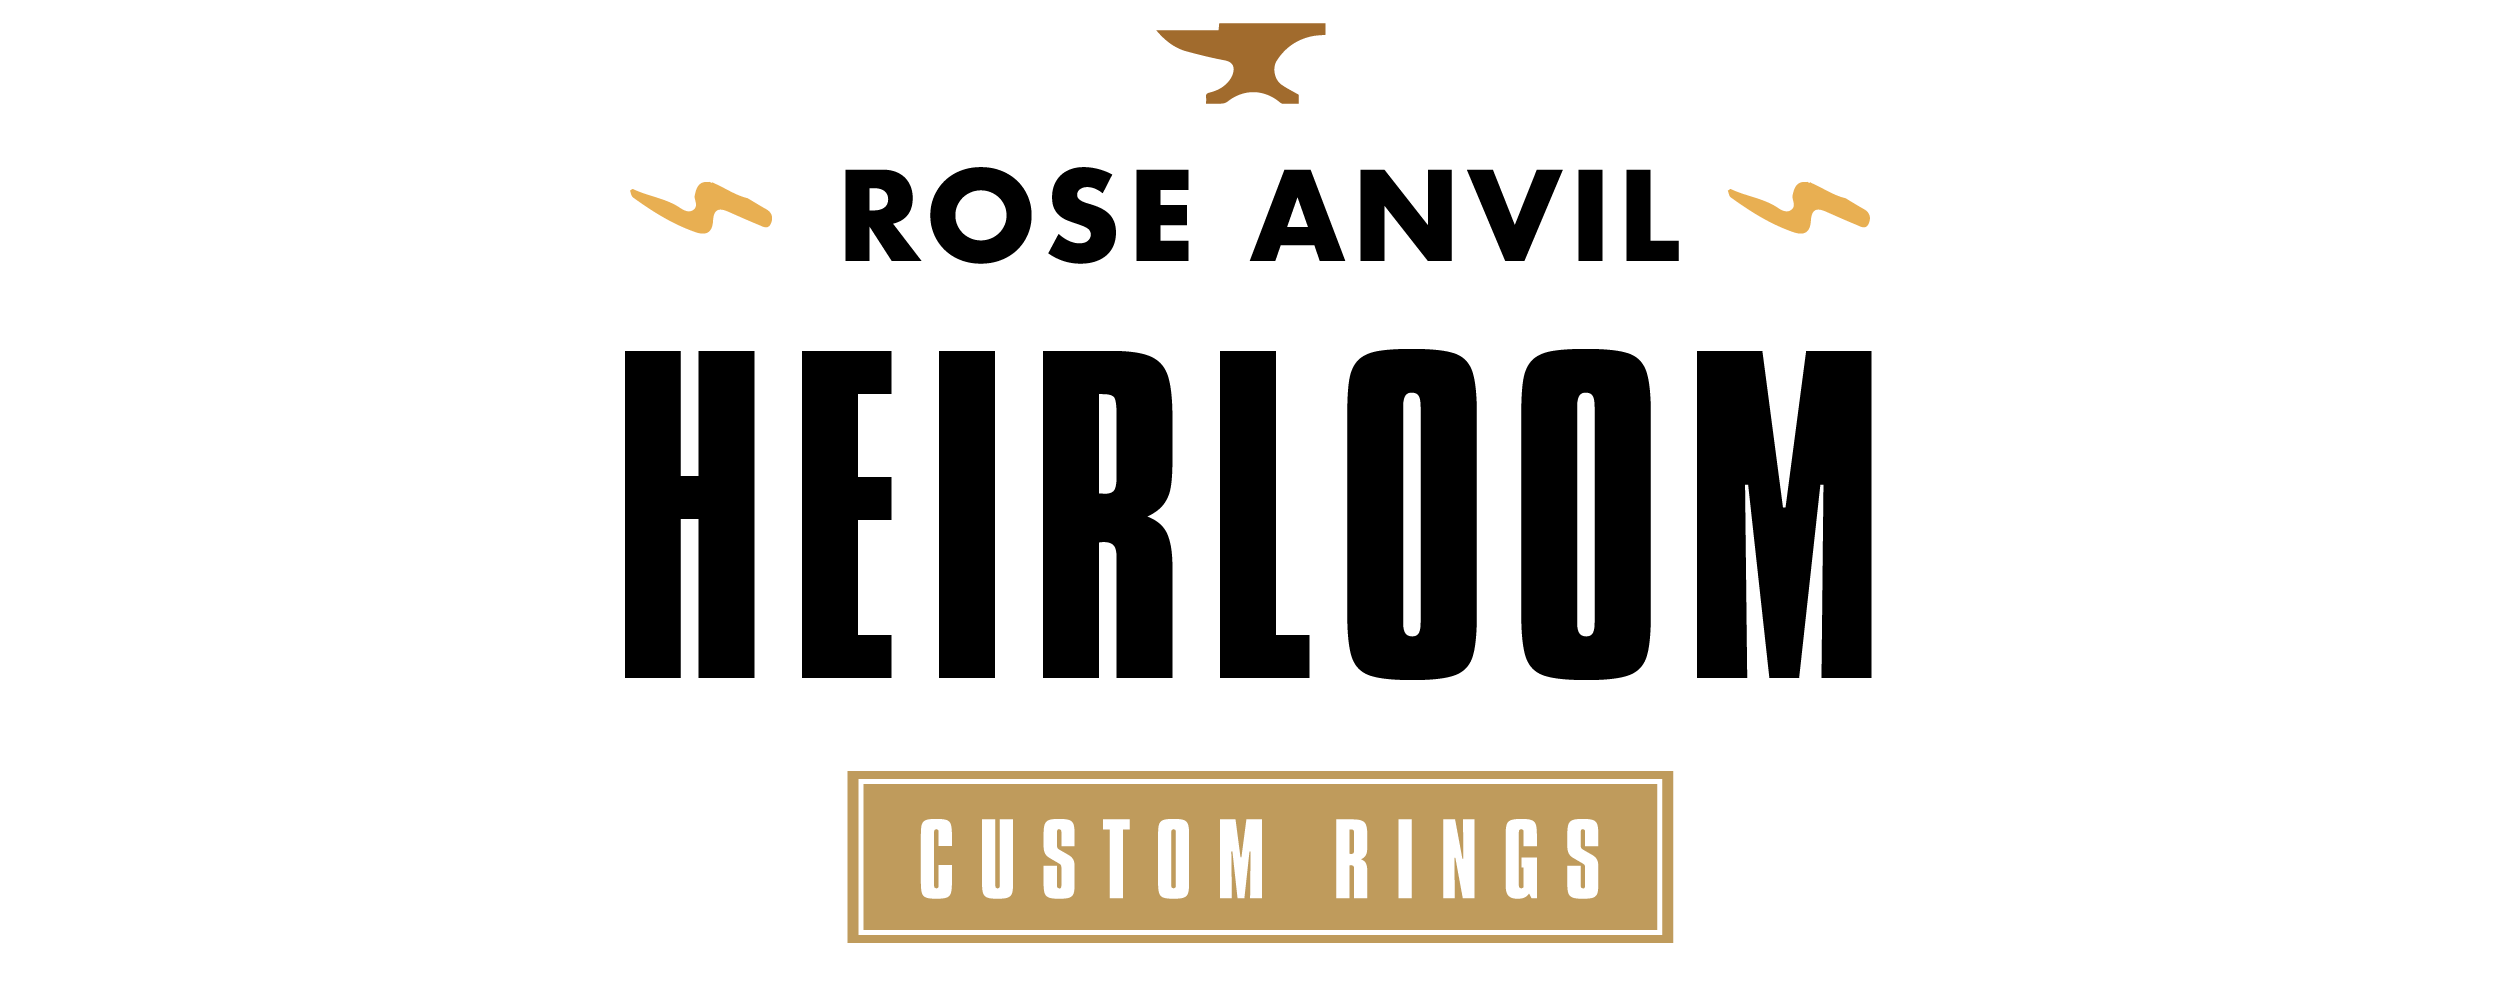 $400 Heirloom Custom Ring